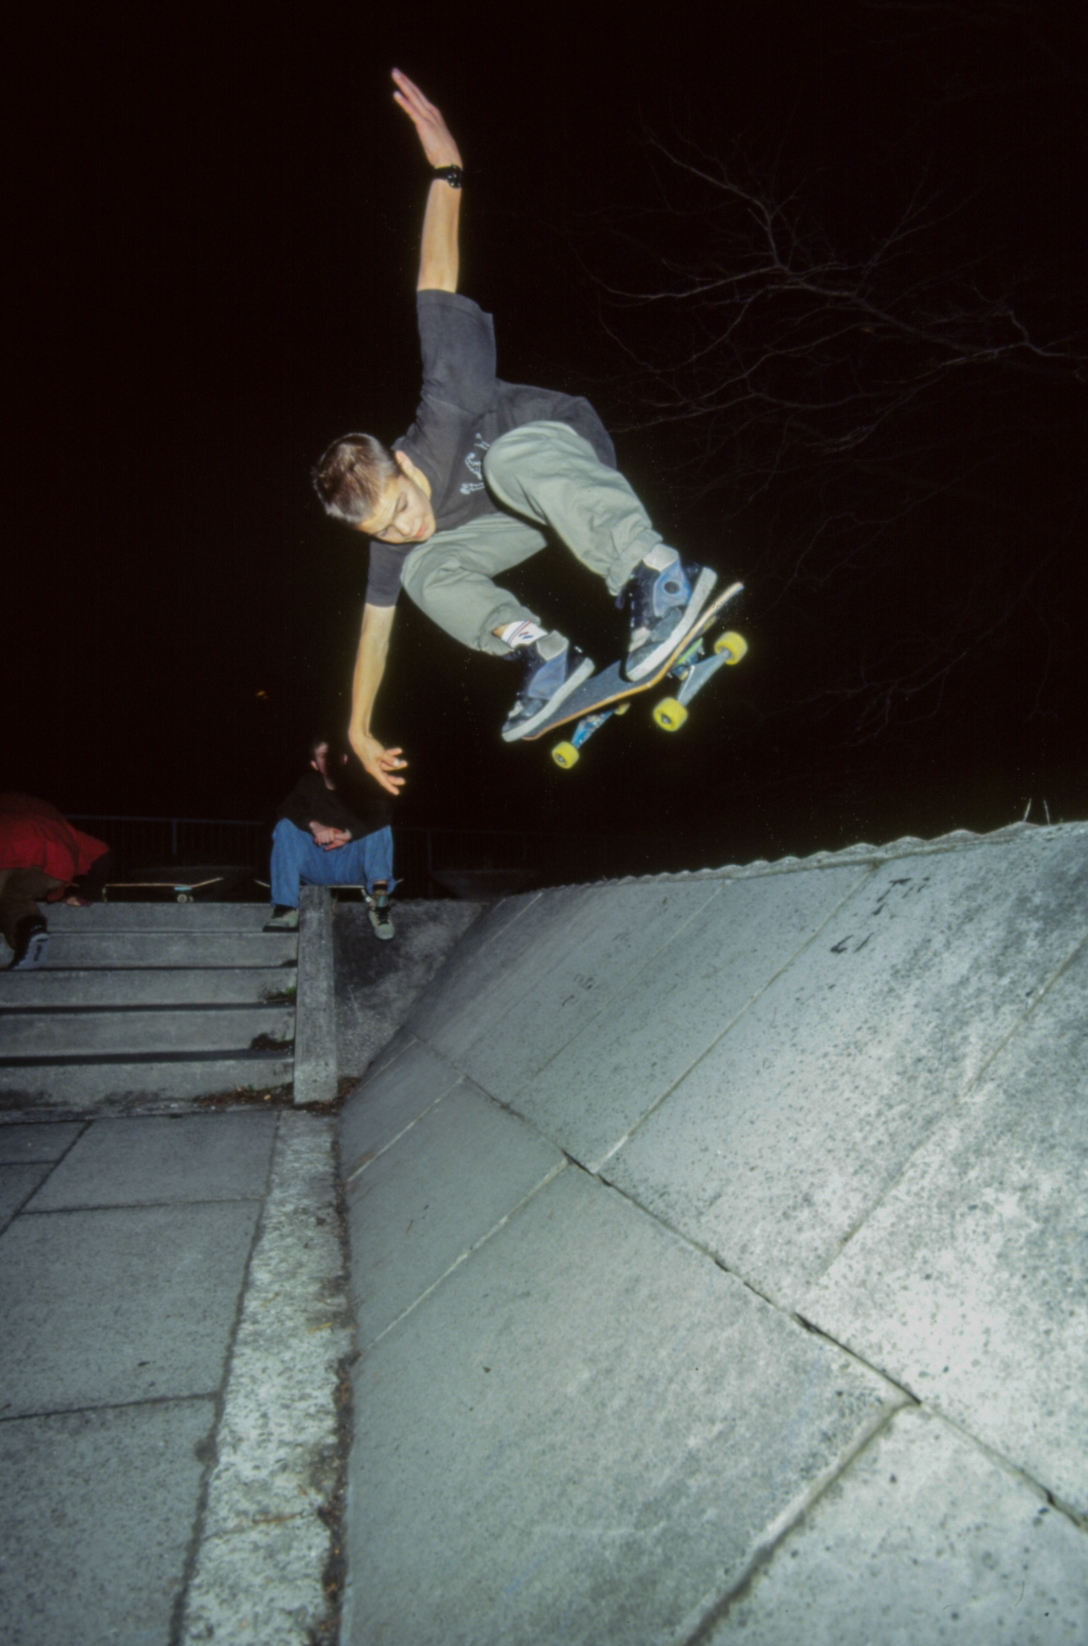 geoff-rowley-backside-ollie-scaff-banks-liverpool-photo-kevin-banks-speedway-skateboarding-magazine